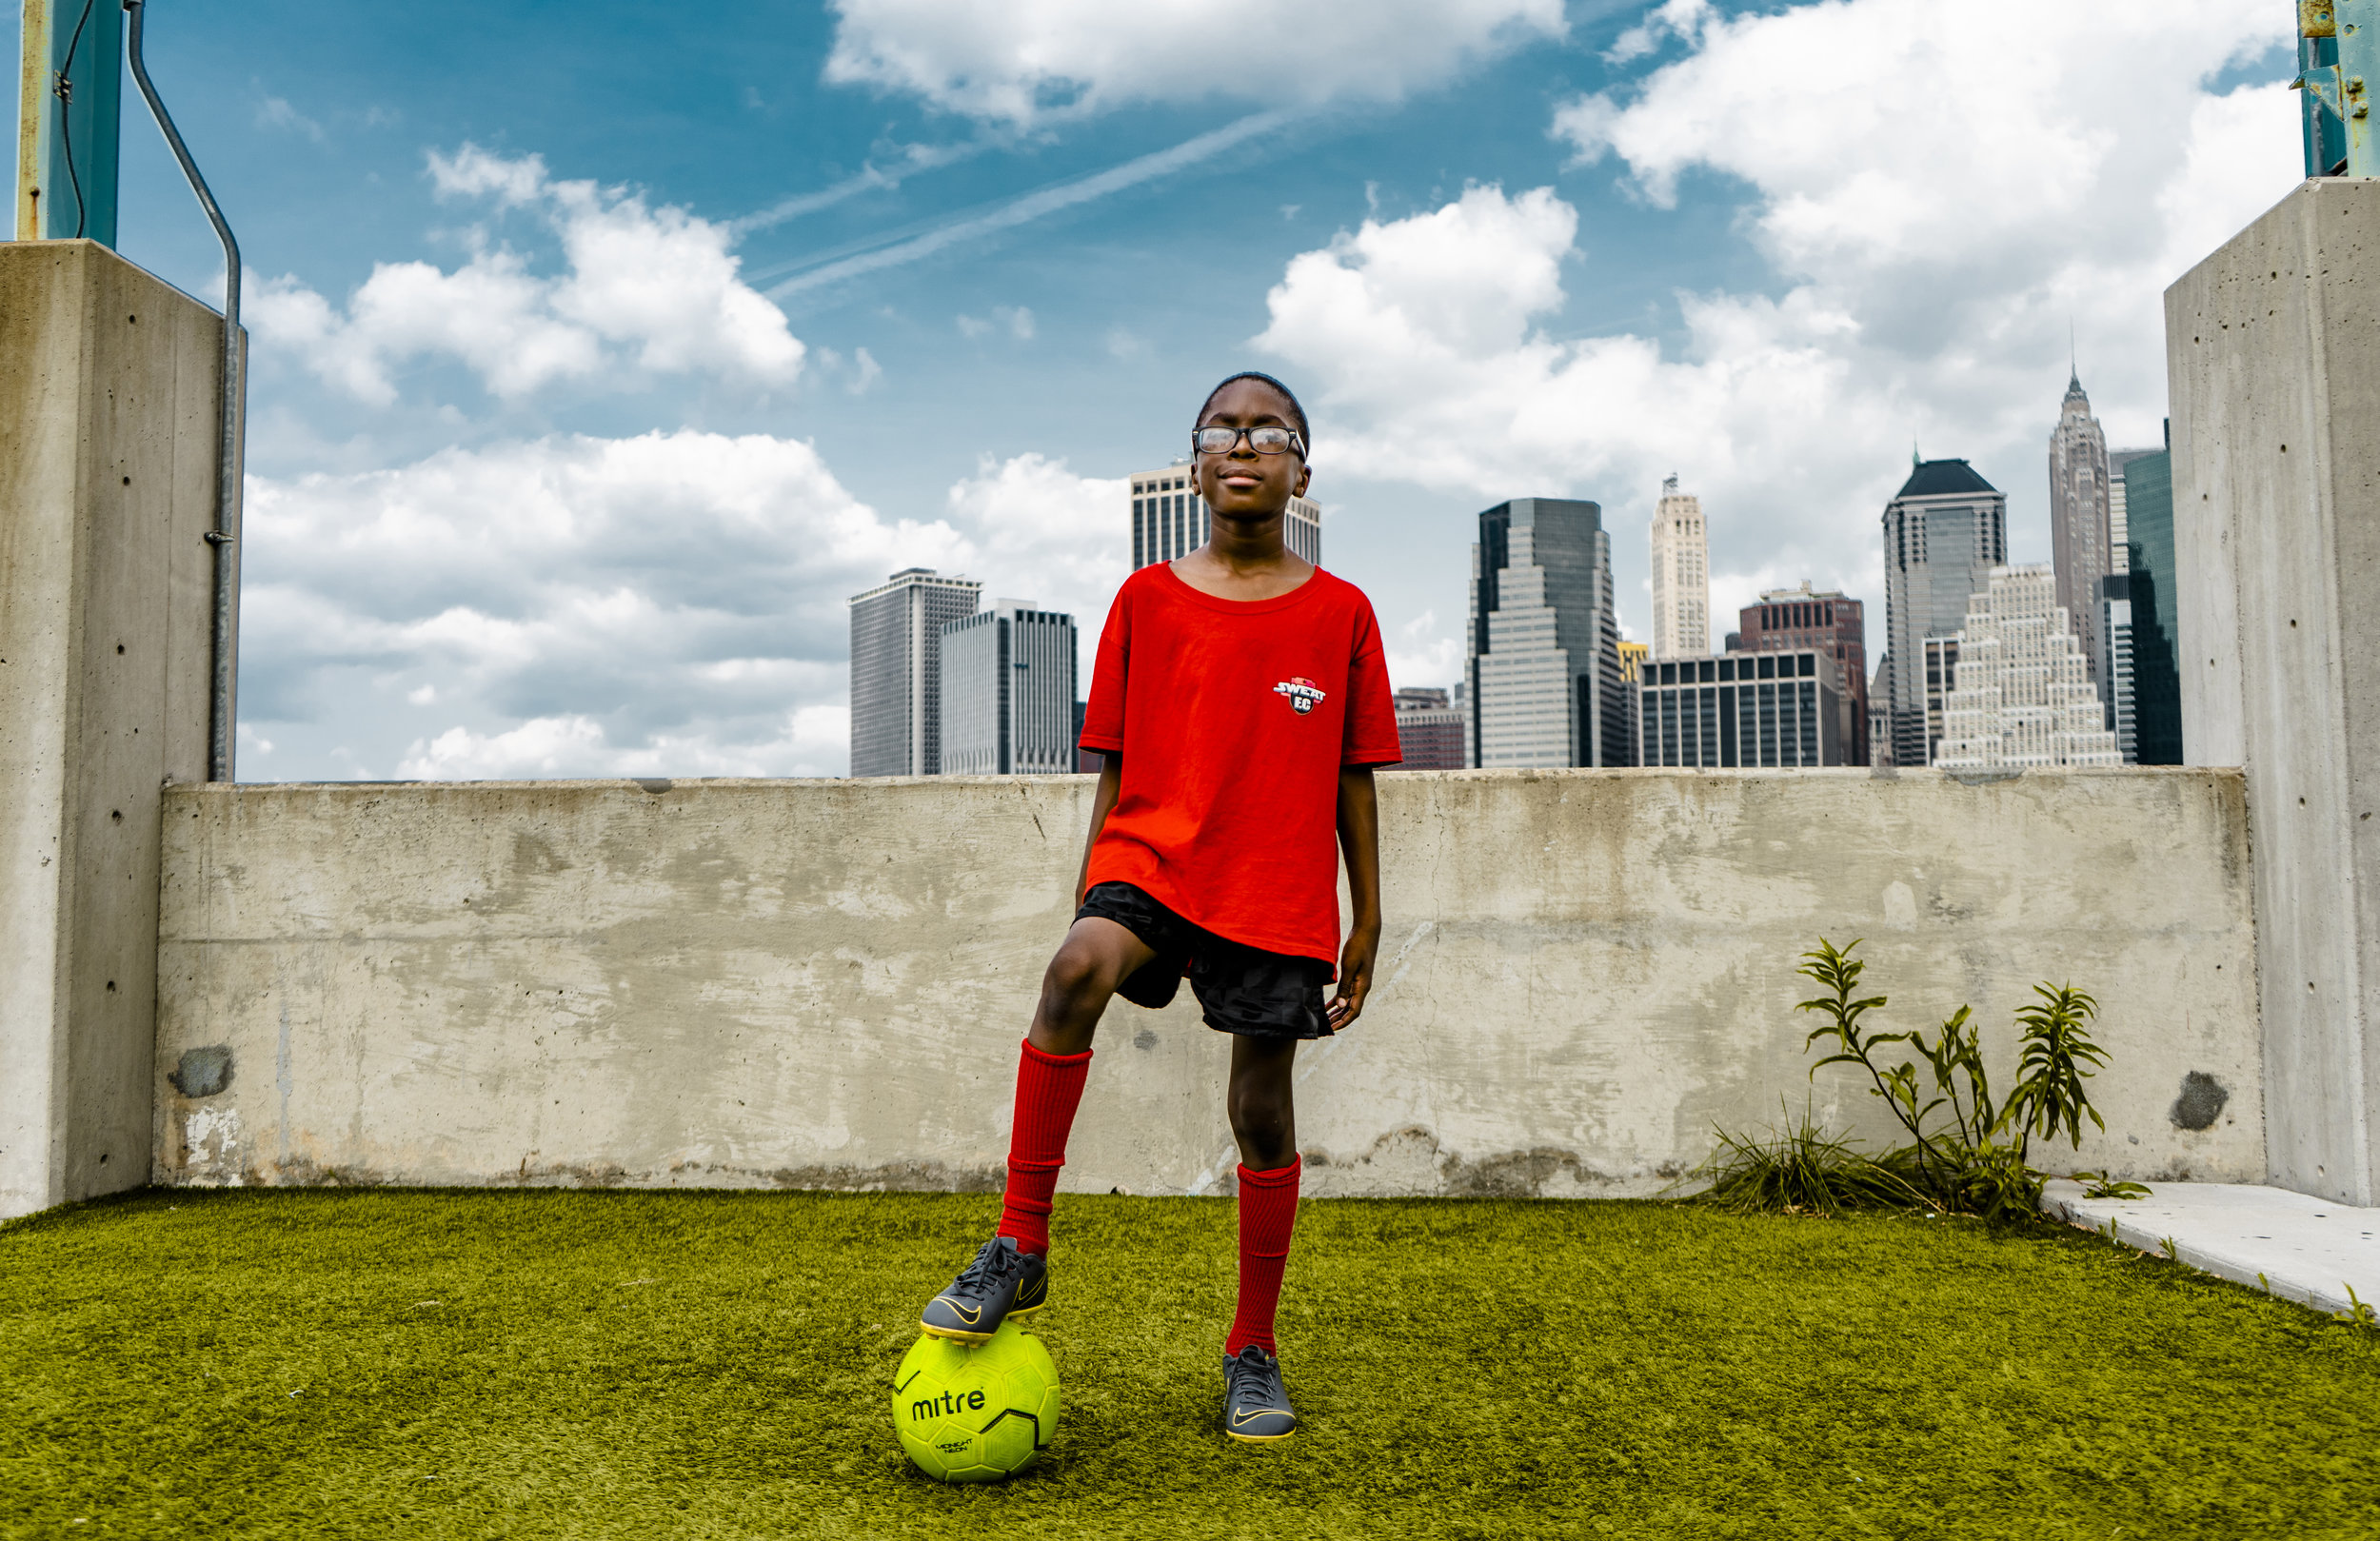 CARROLL GARDENS AGES 5 - 9 - Fall 2019 Carroll Gardens soccer school classes are now open for enrollment. Our classes are Wednesday's and Friday's at 3:30 PM